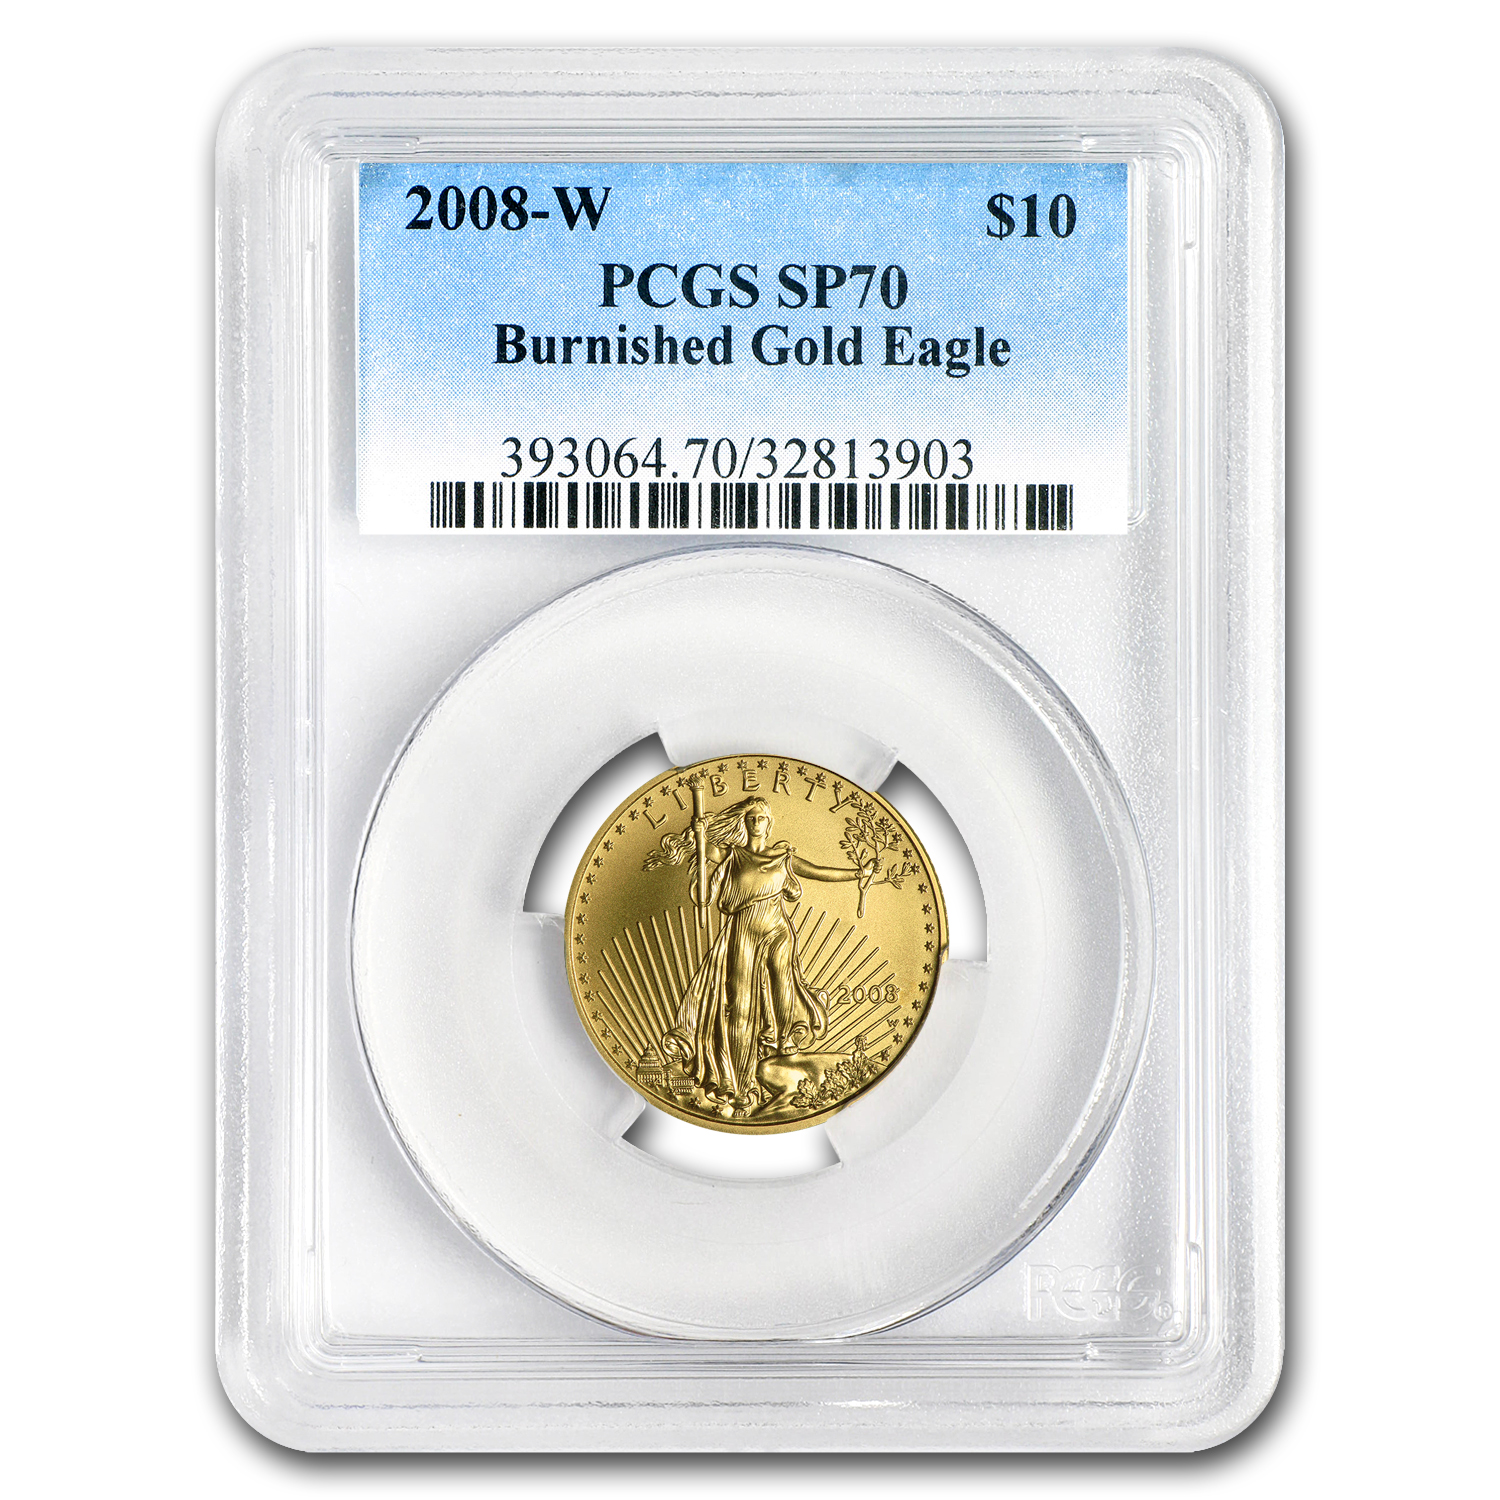 2008-W 1/4 oz Burnished Gold American Eagle SP-70 PCGS